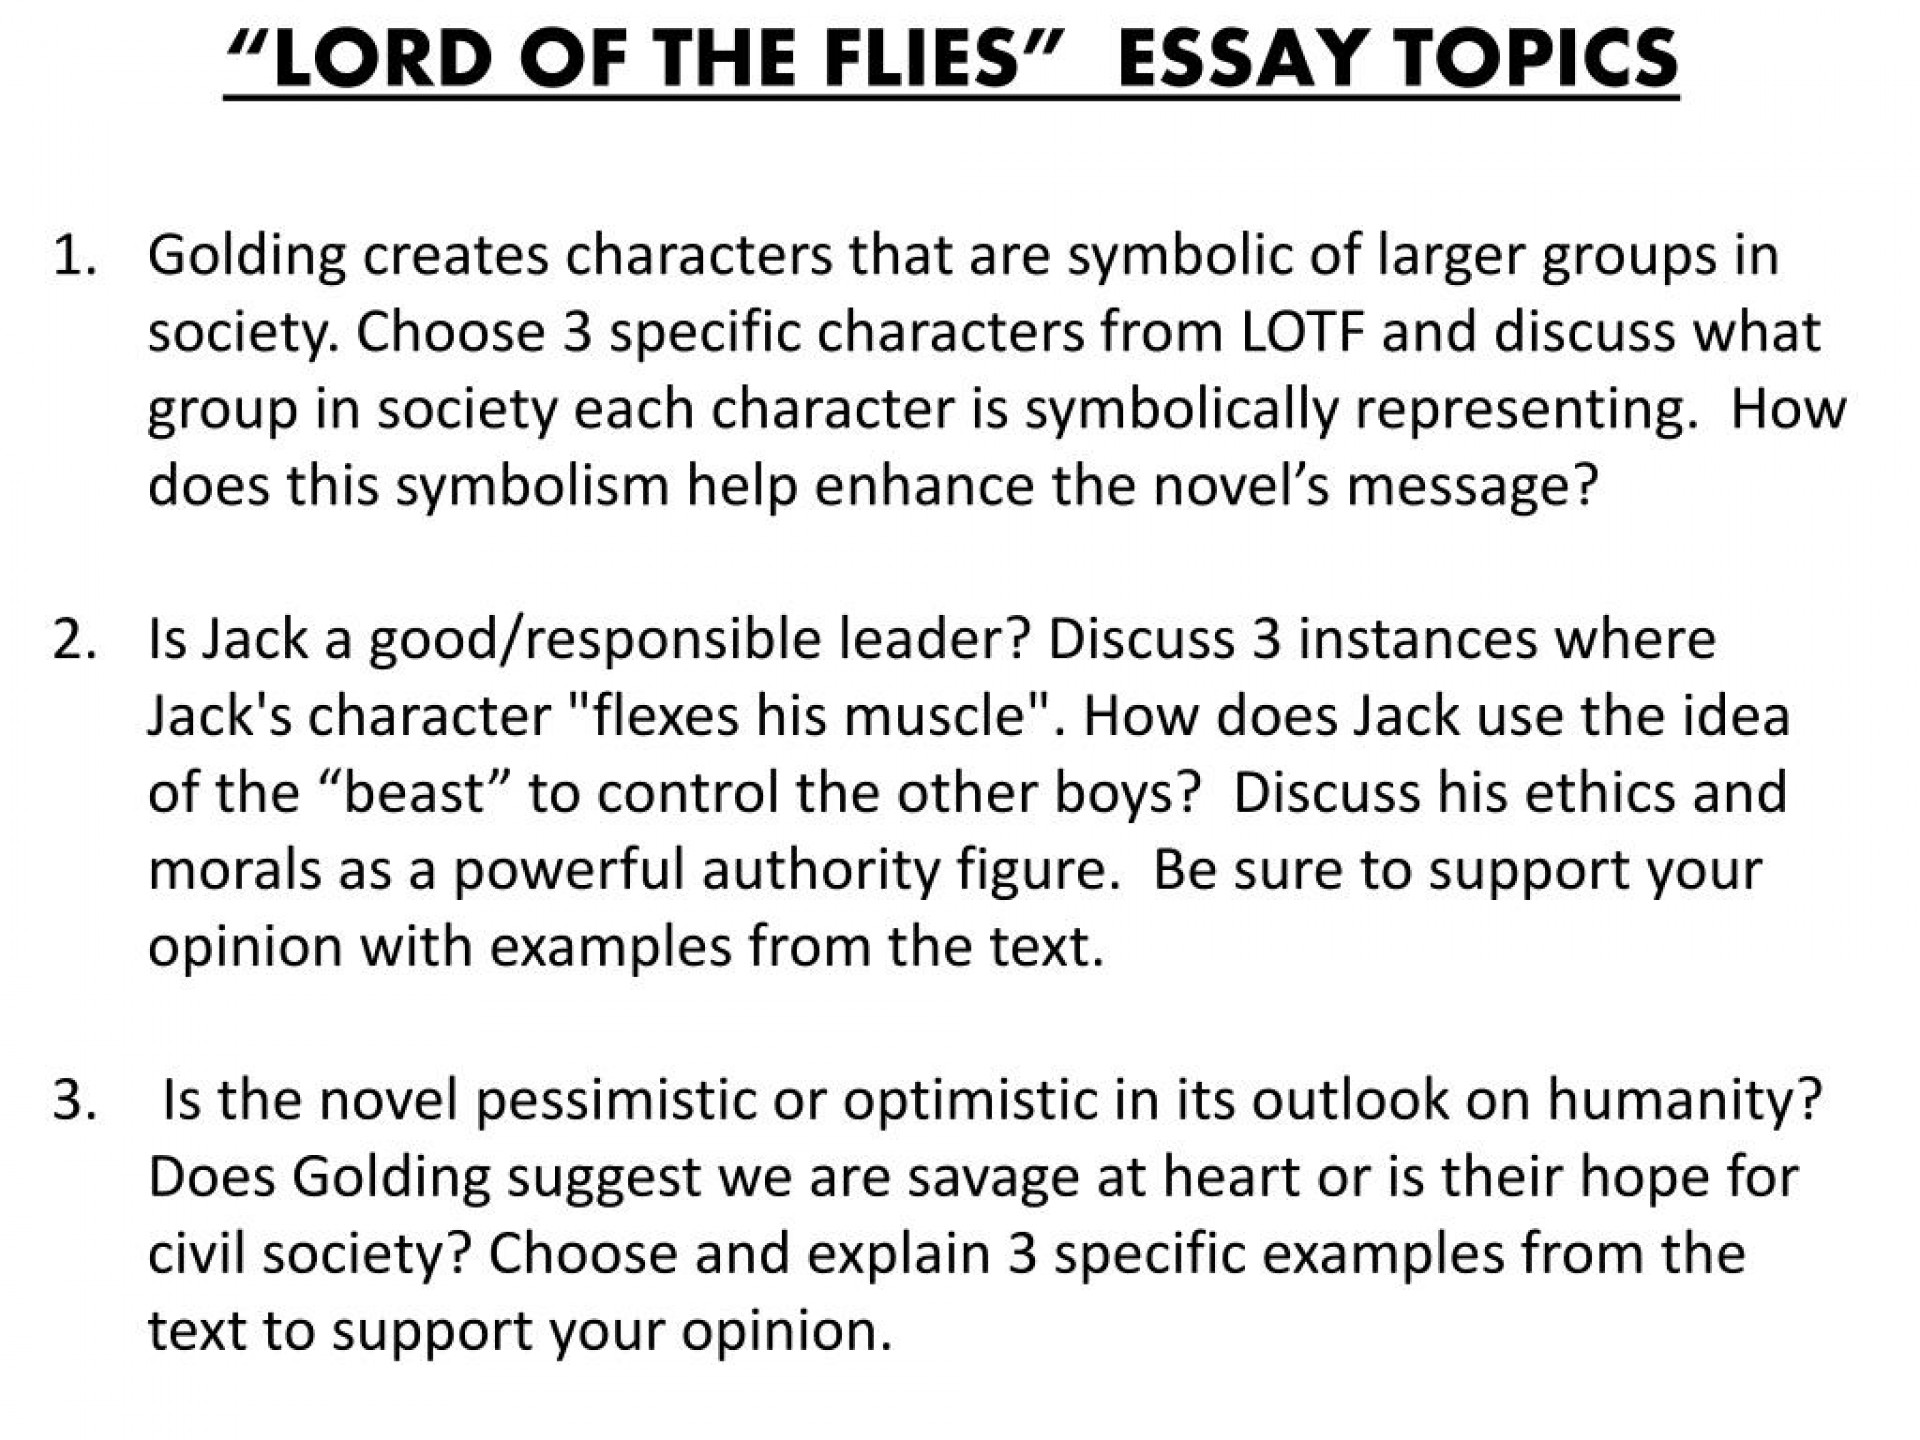 004 Slide1 L Essay Example Lord Of The Flies Unusual Symbolism Beast Introduction Prompt 1920